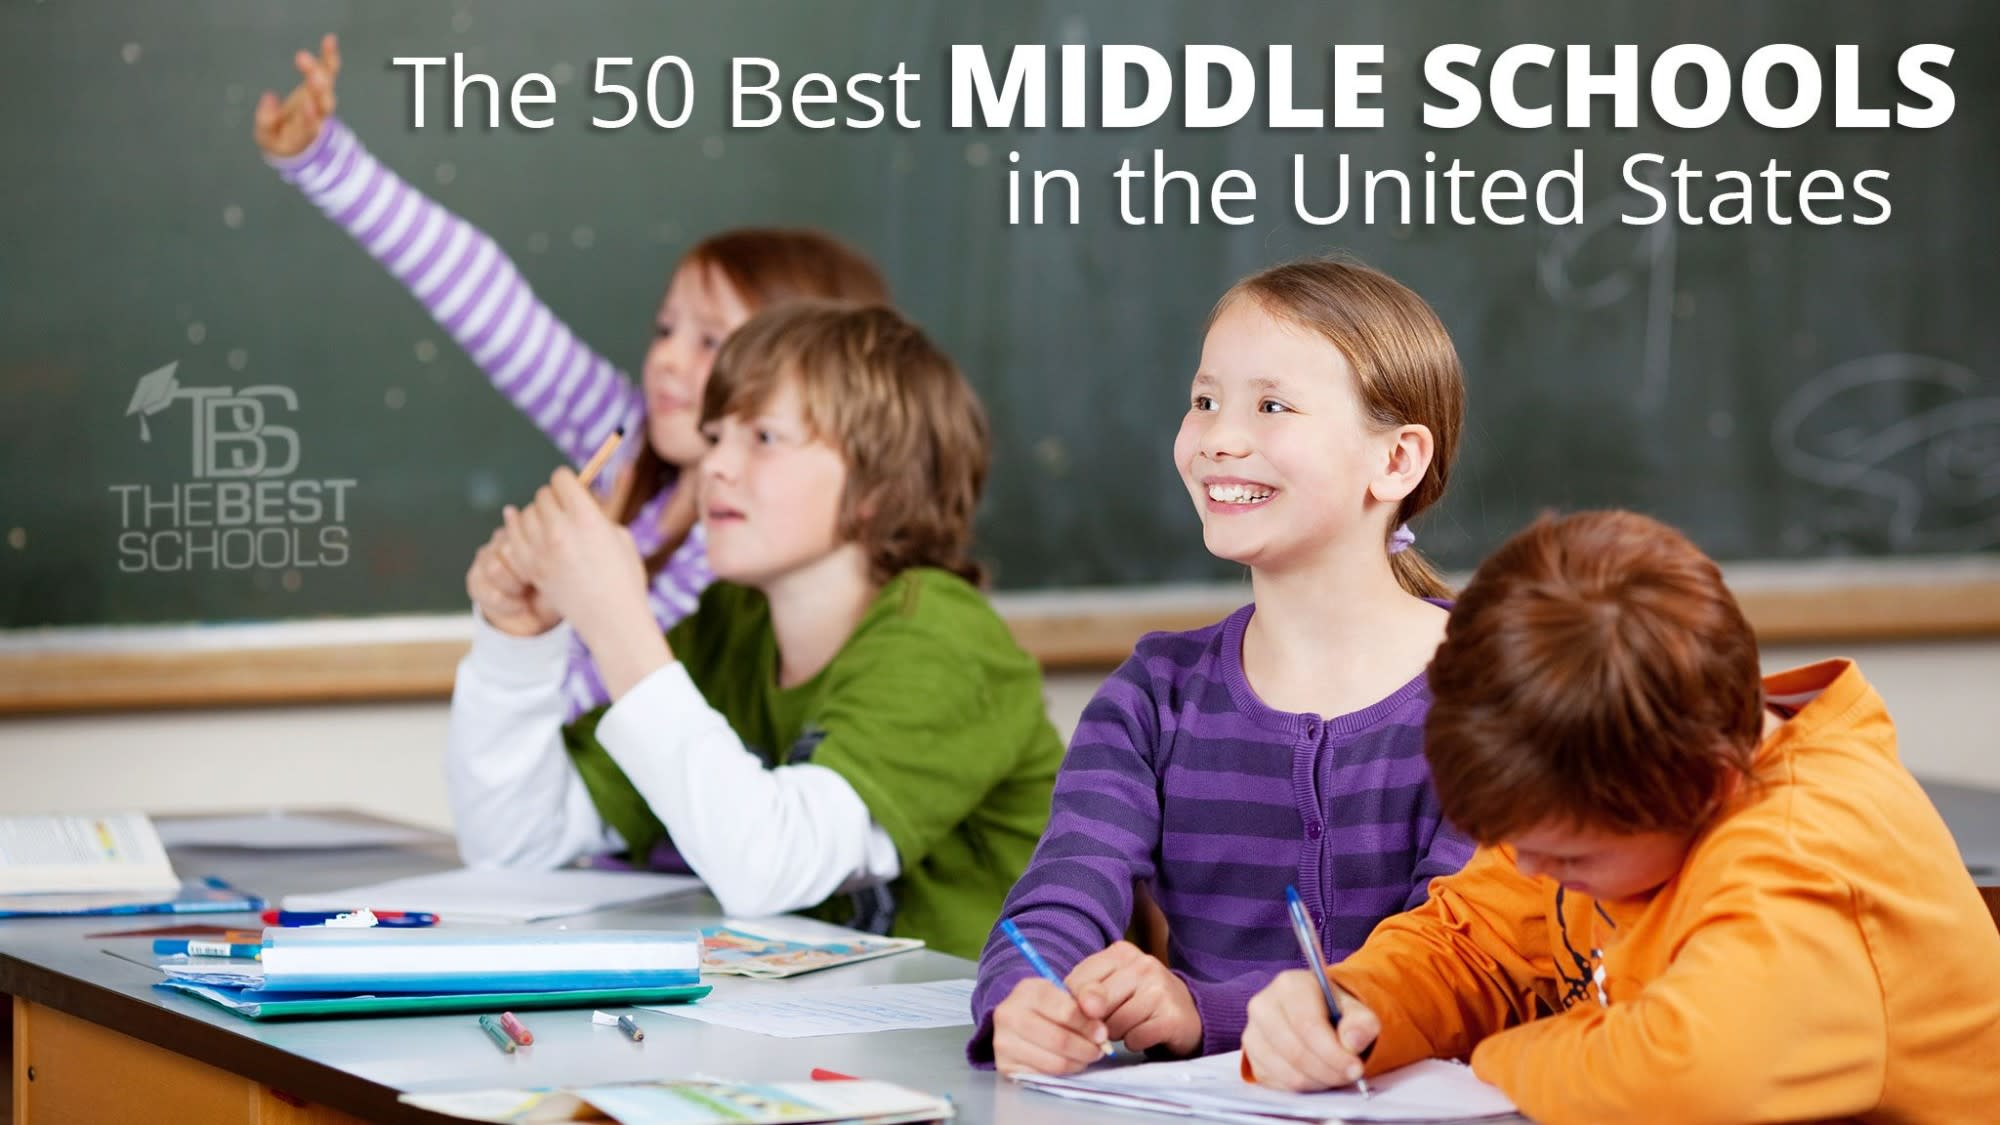 American High School Full Movie 2009 the 50 best middle schools in the u.s. | thebestschools